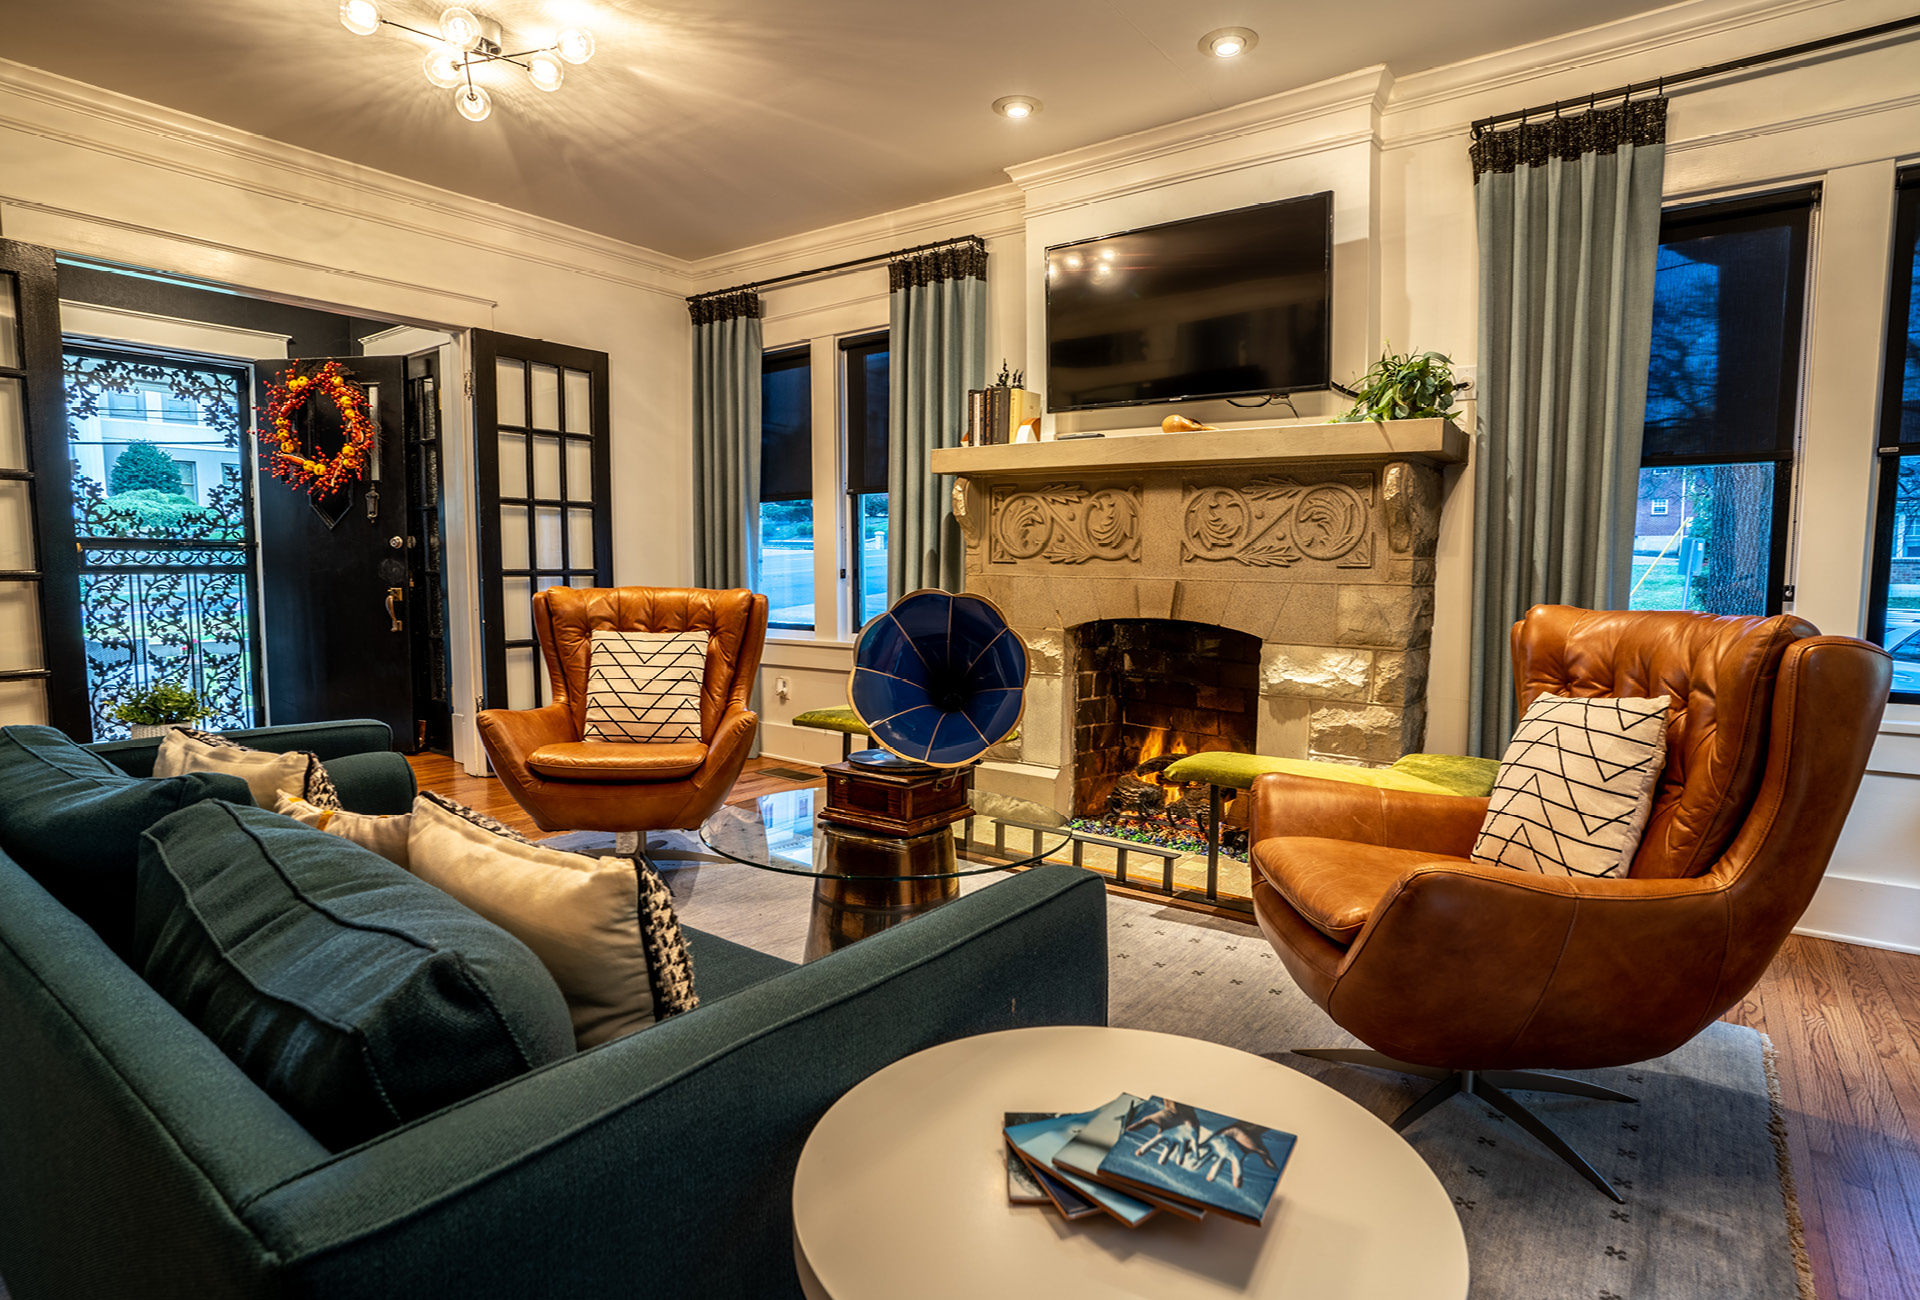 A couch, fireplace, and leather chairs in The NashVilla main room